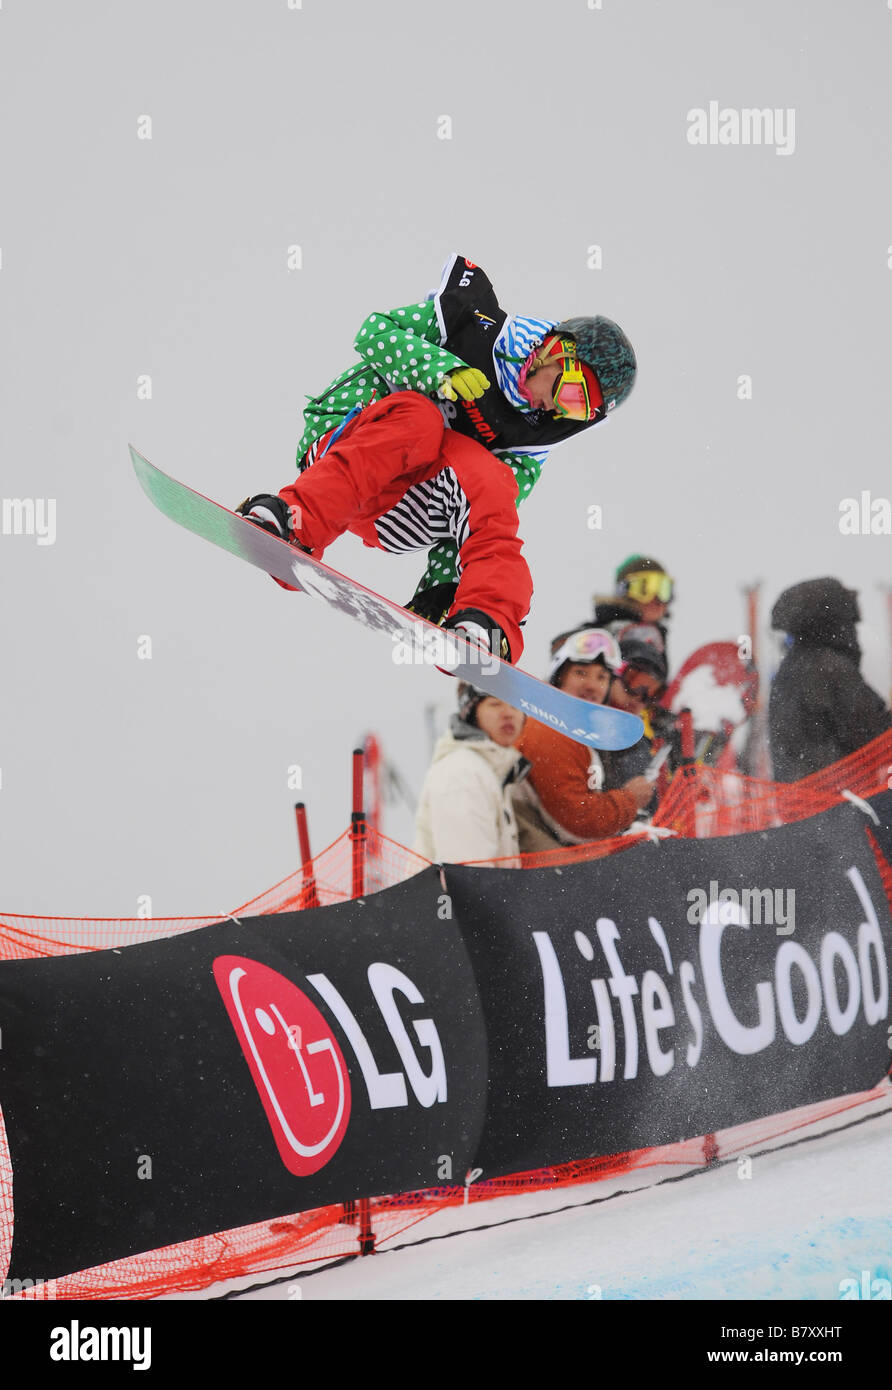 Ryo Aono JPN JANUARY 14 2009 Snowboarding LG Snowboard FIS World Cup 2009 Half Pipe Gifu Japan Photo by Atsushi - Stock Image